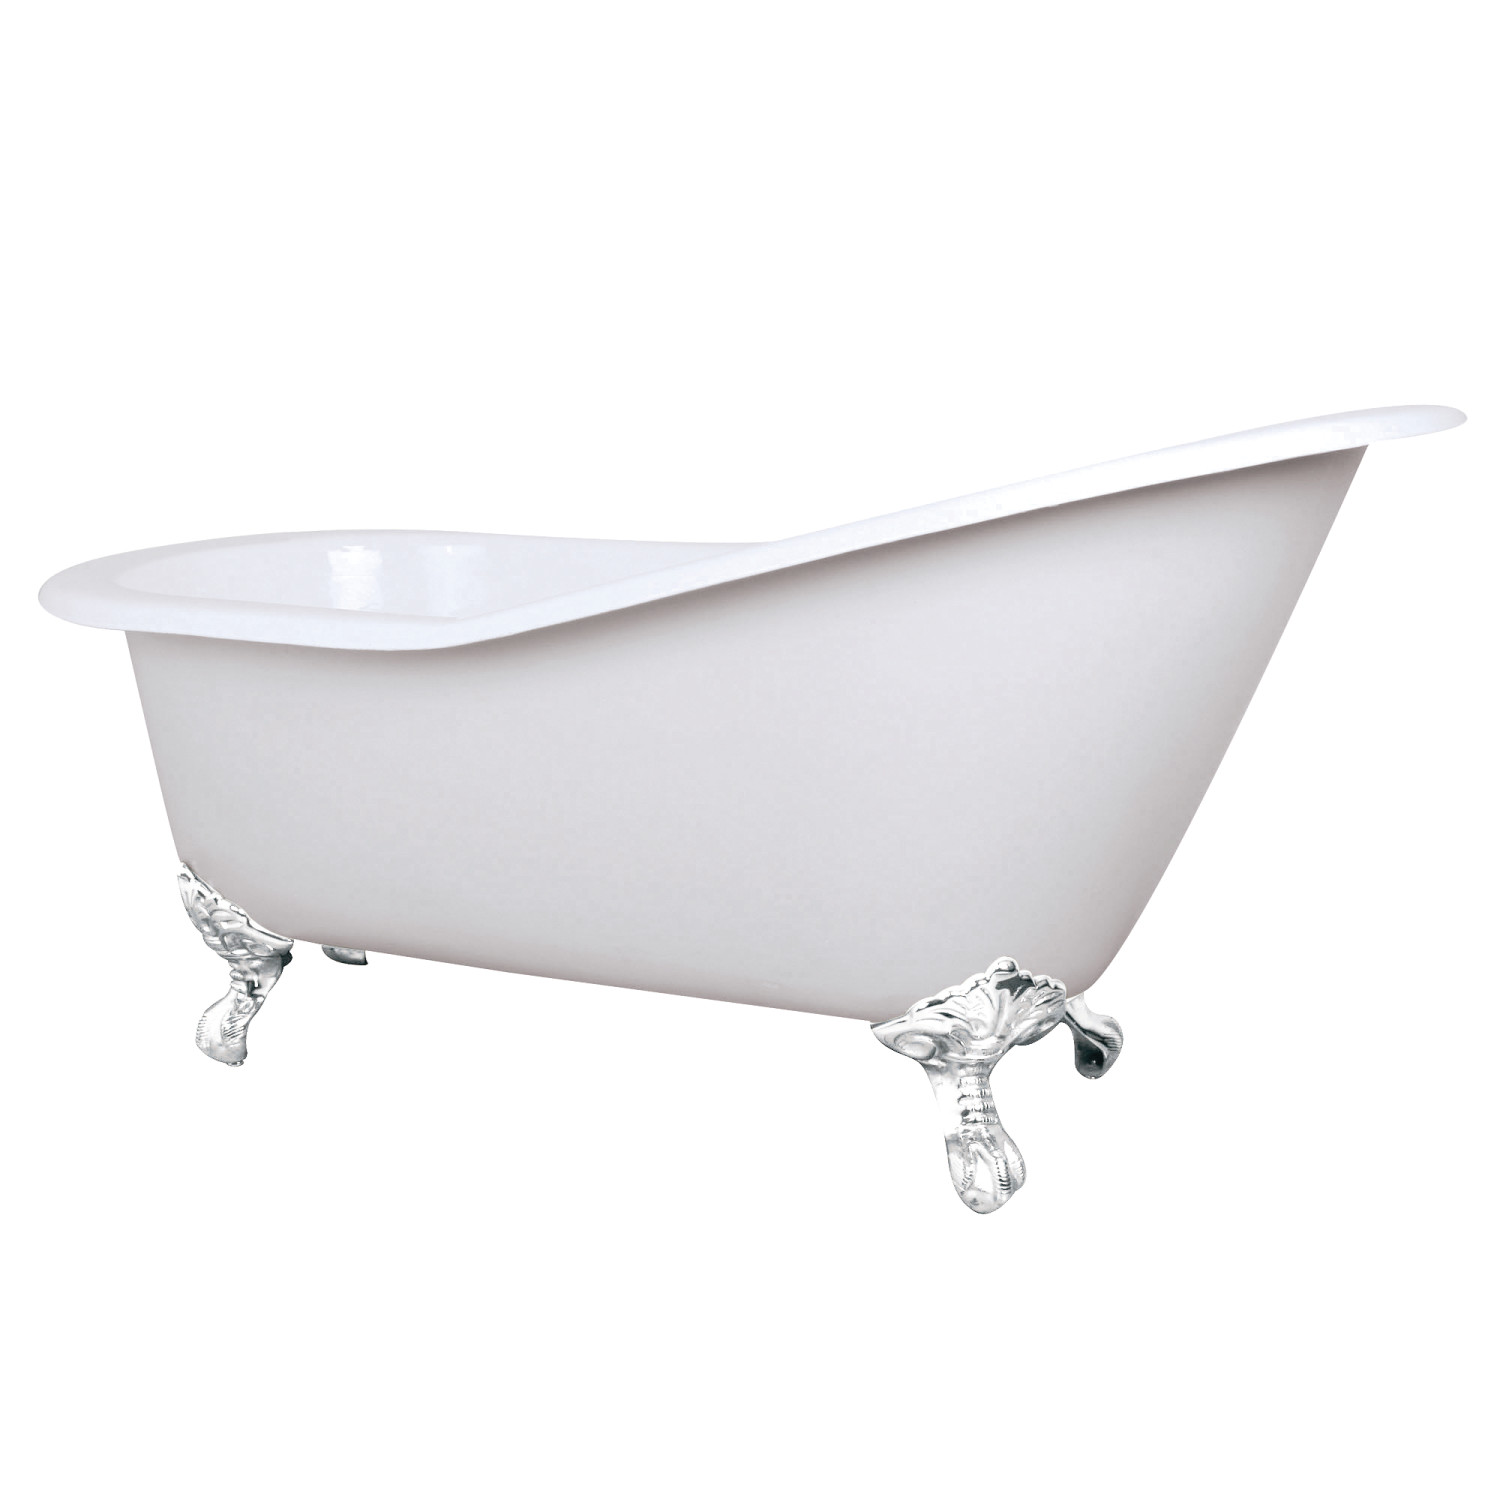 Elements Of Design Mvctnd653129bw 61 Cast Iron Slipper Clawfoot Tub With Feet No Faucet Drillings White